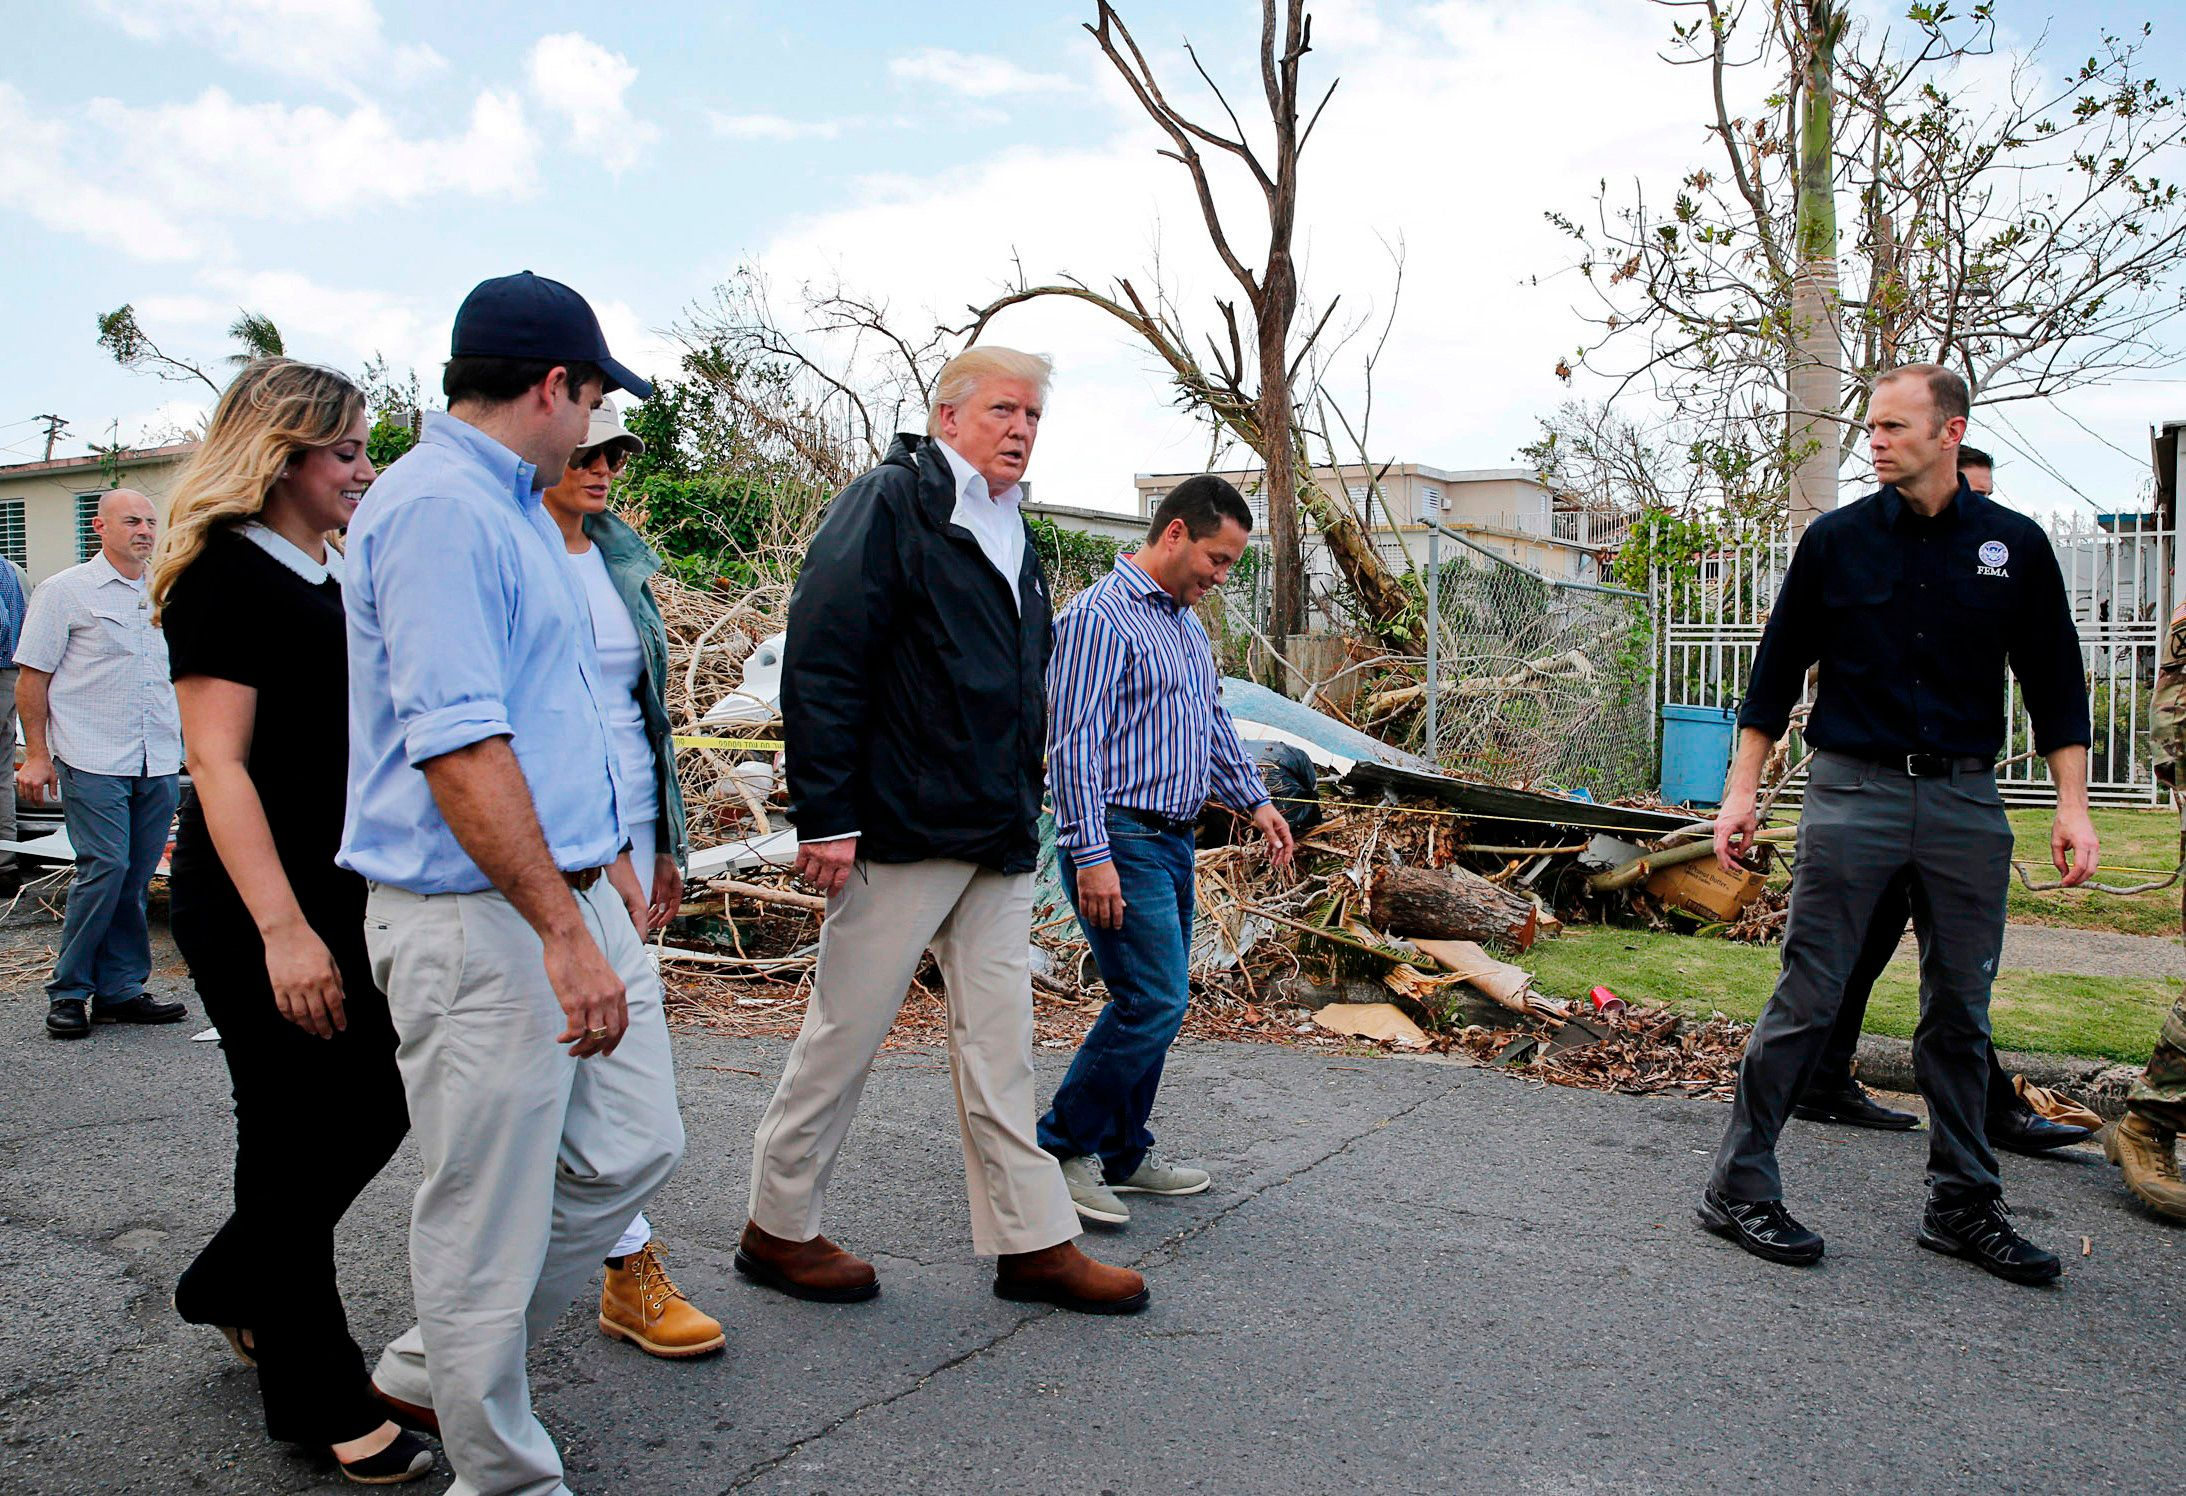 President Trump participates in a walking tour of areas damaged by Hurricane Maria in Guaynabo, Puerto Rico, Oct. 3, 2017. (Jonathan Ernst/Reuters)